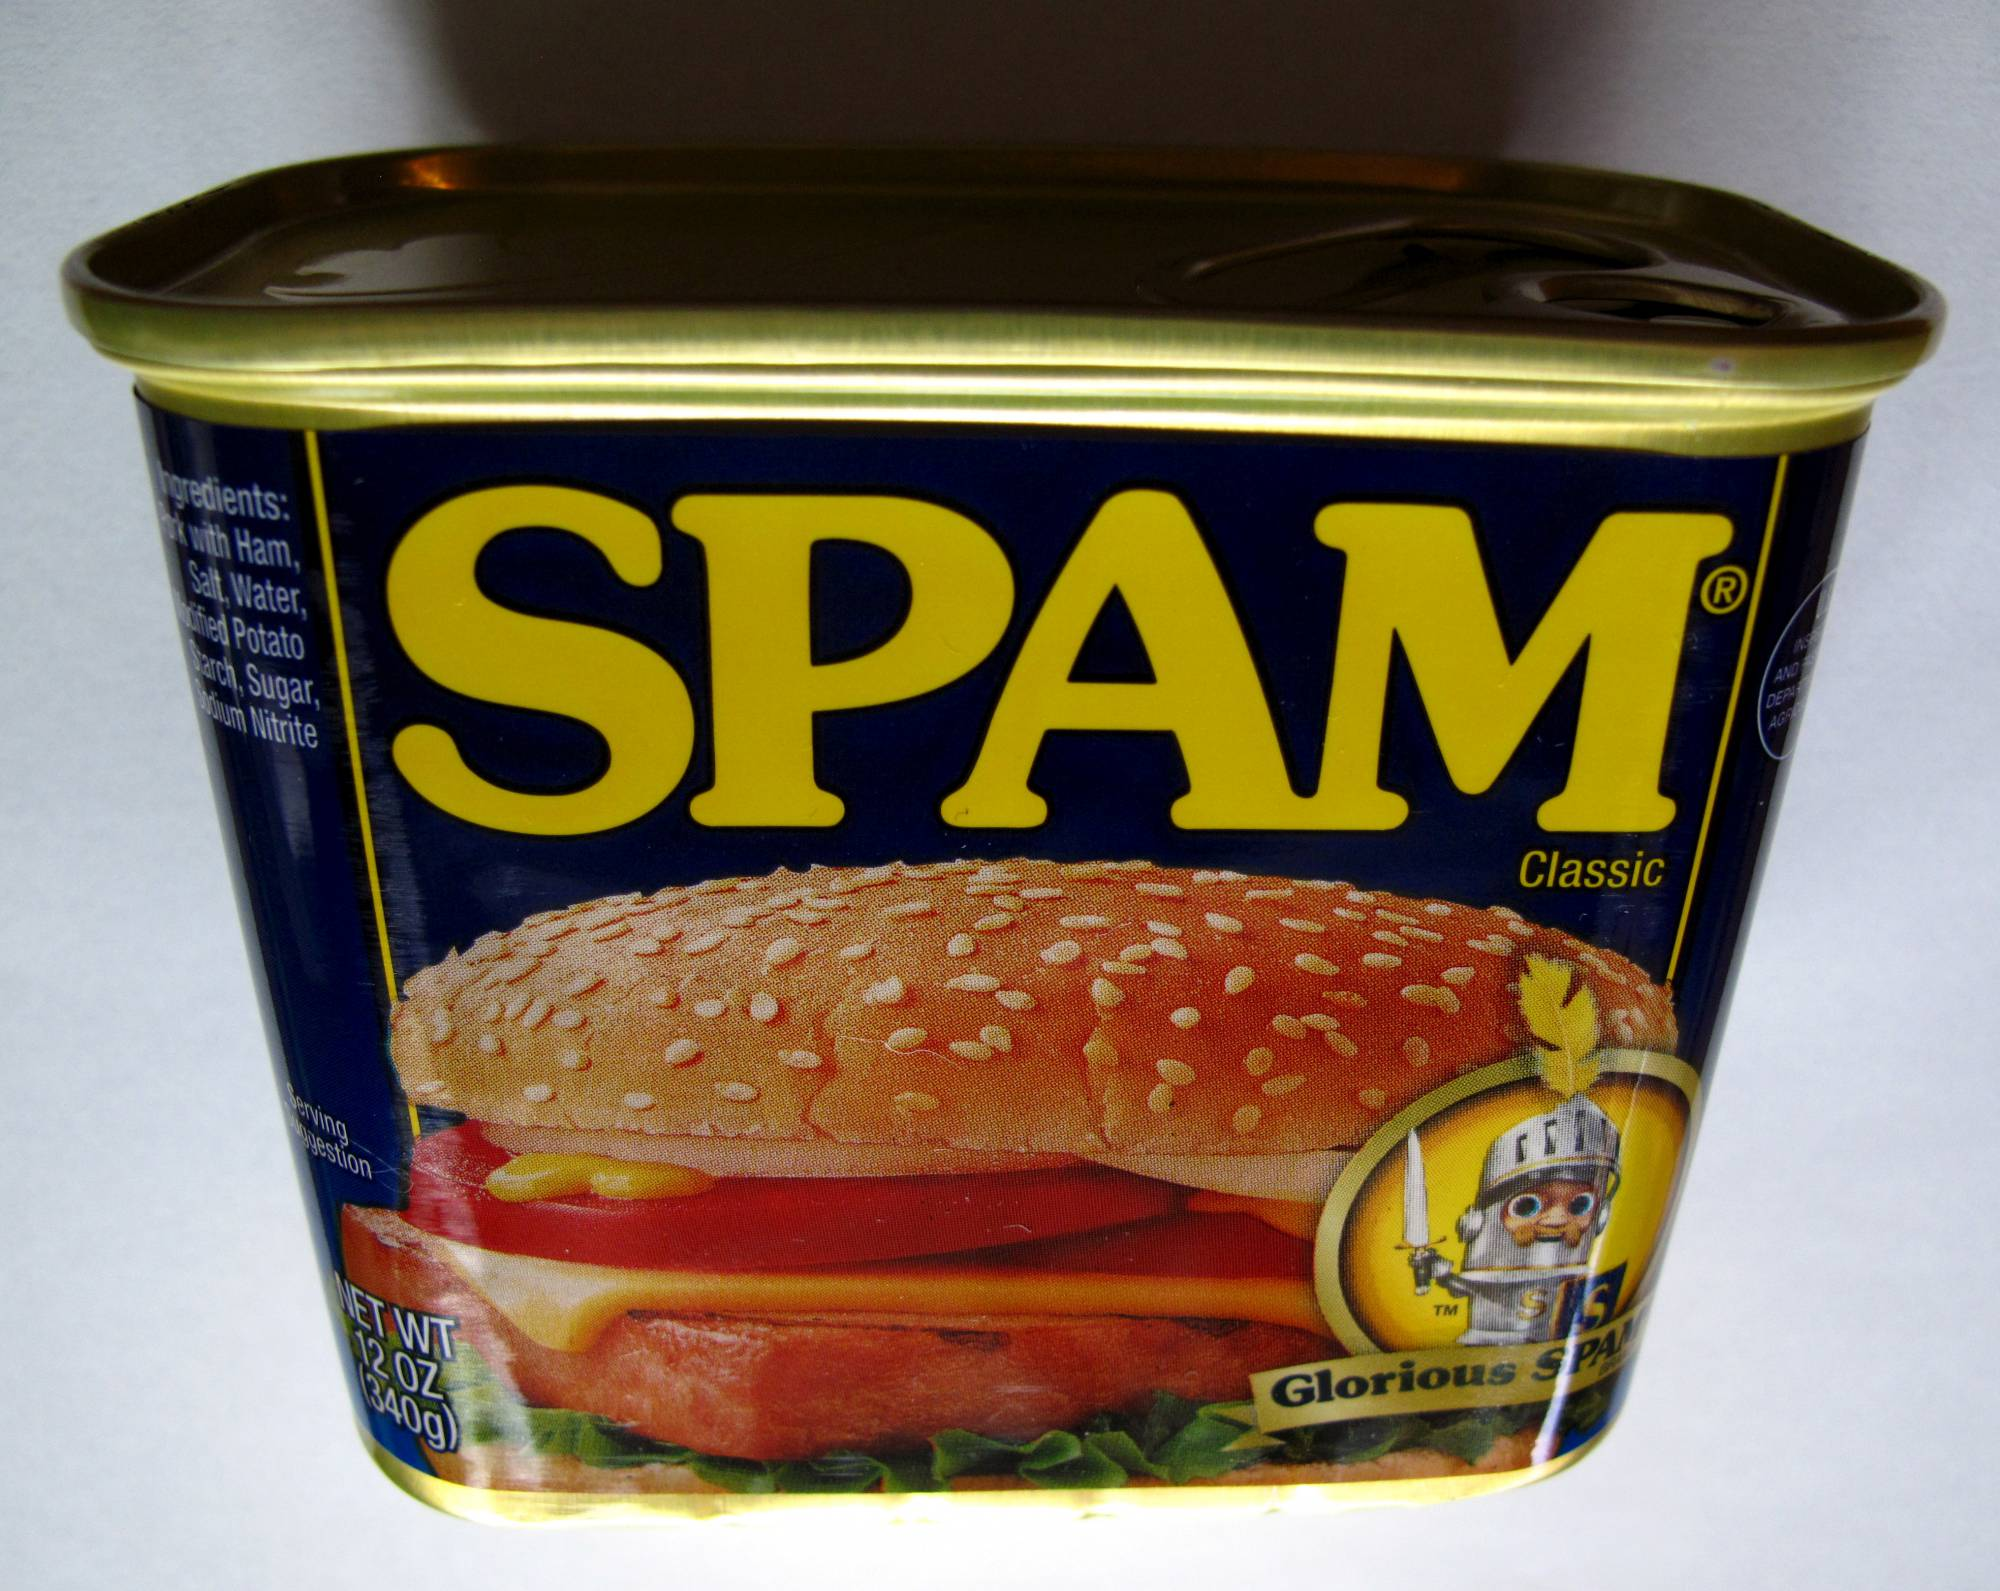 A can of Spam canned meat is shown in this illustration photograph in Encinitas, California